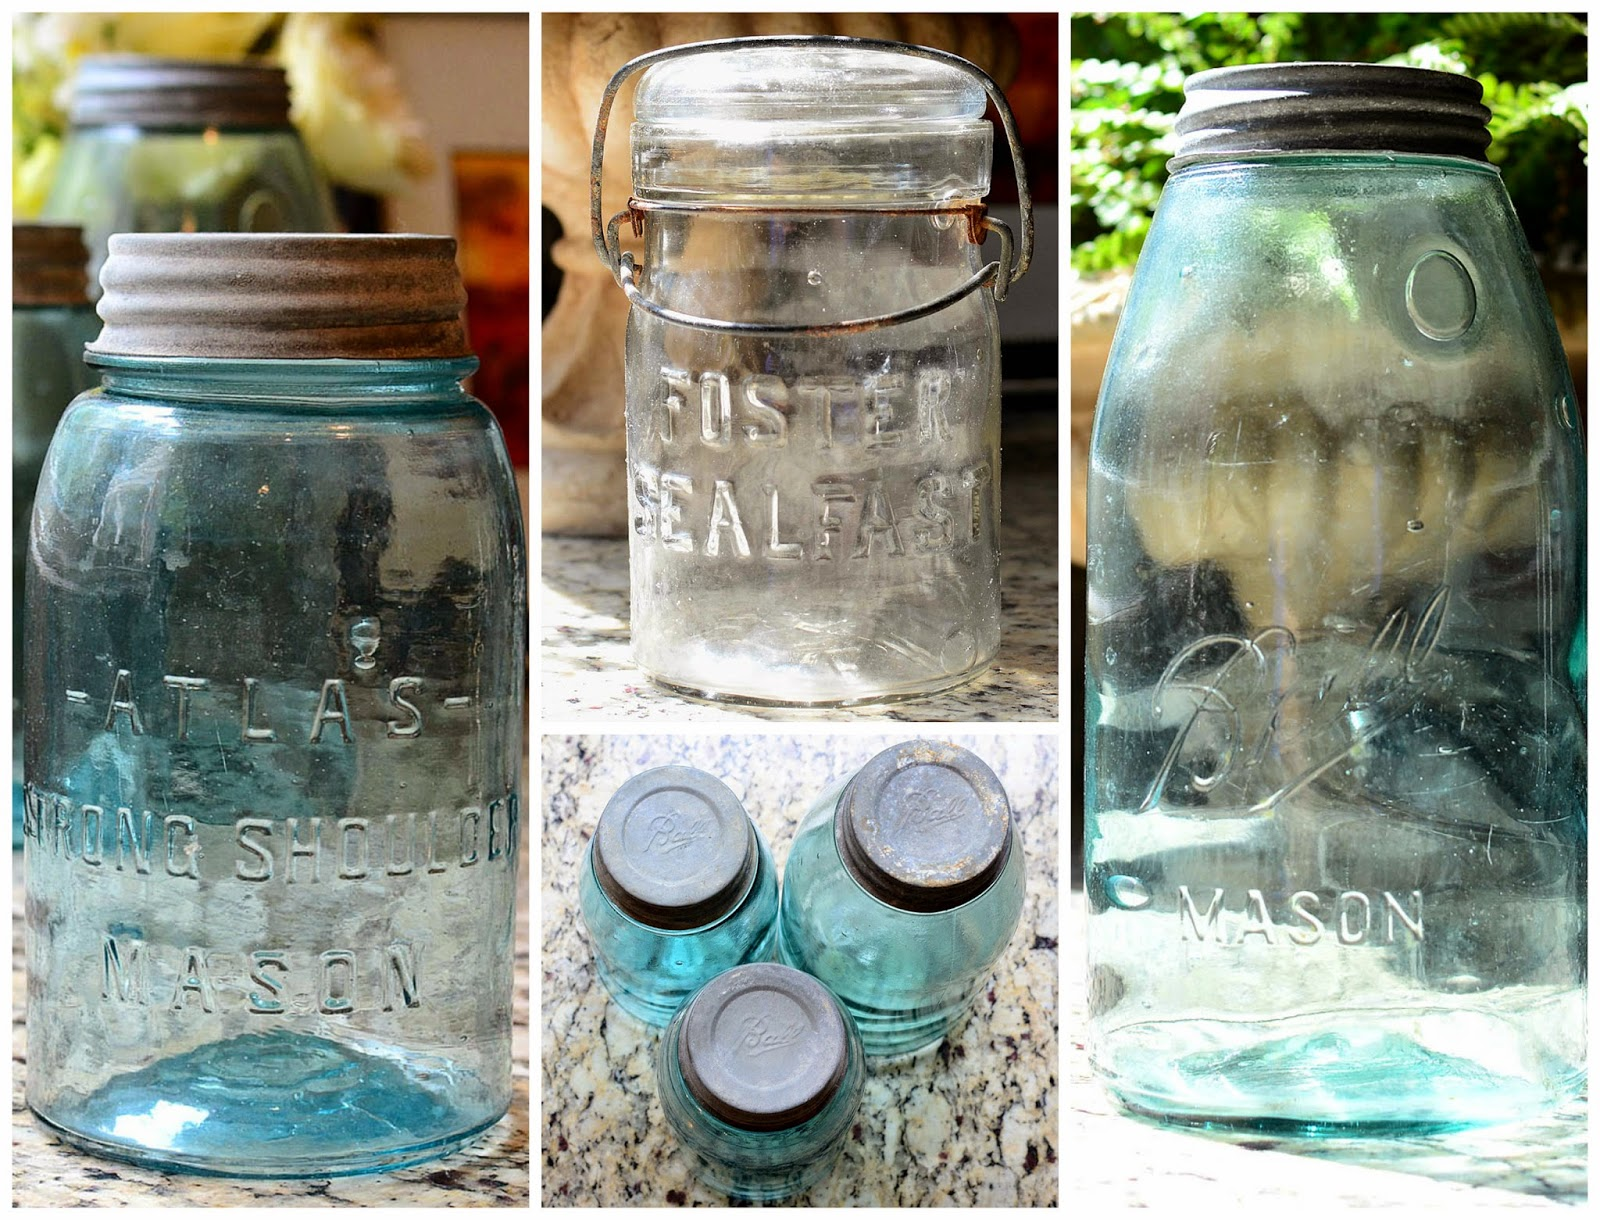 dating golden harvest mason jars How to find the value of old vintage mason jars: canning jars, like any other collectable, can range in value between only a few dollars and several thousand dollars.